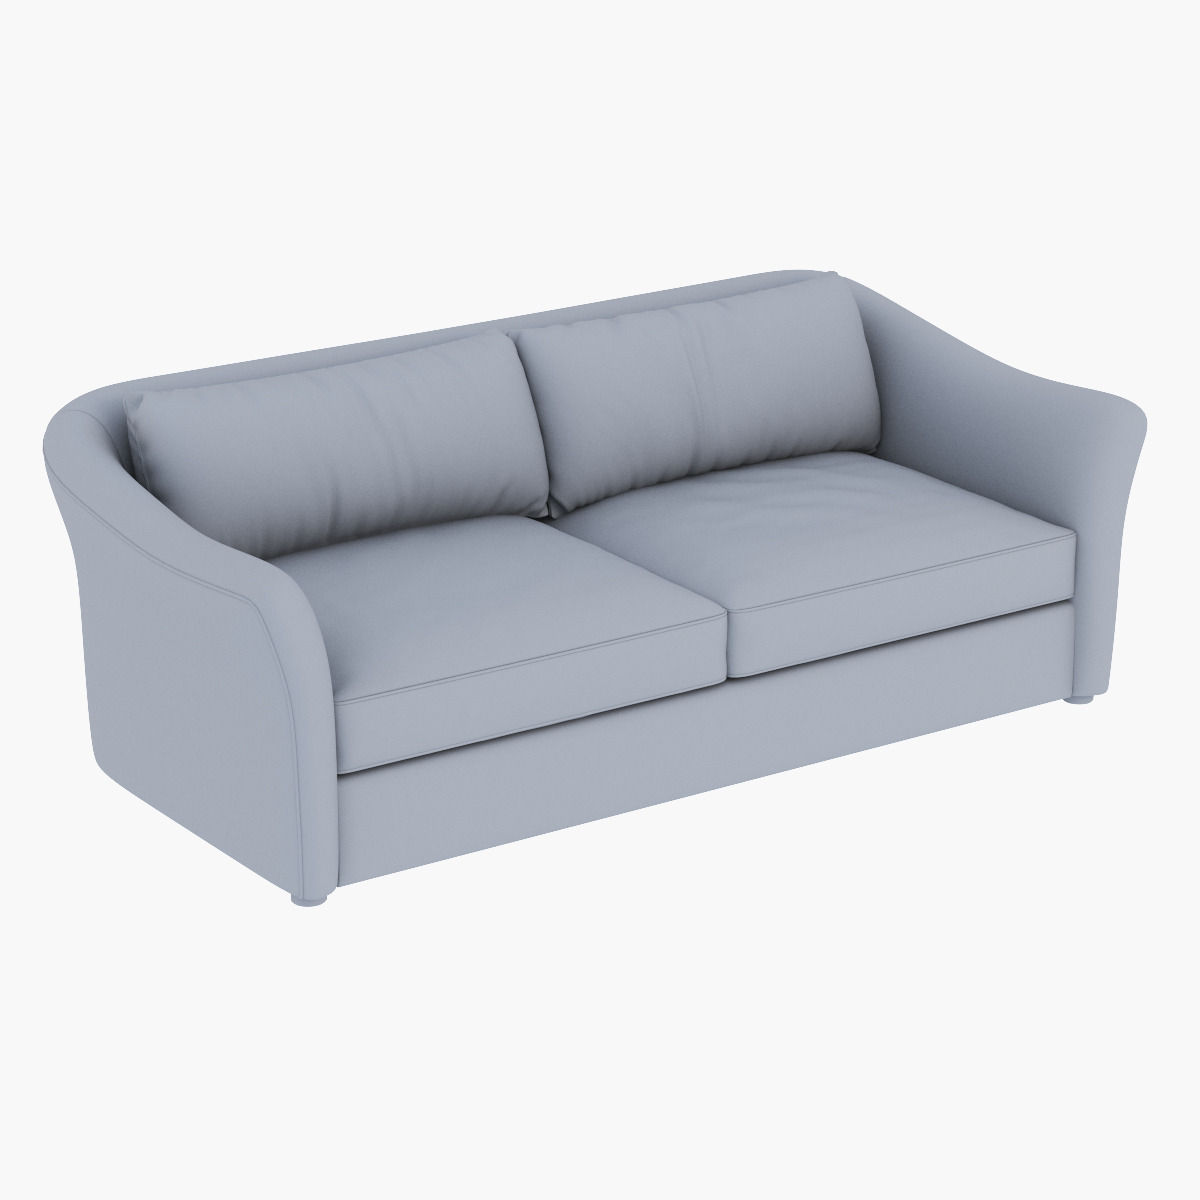 delaney sofa Home The Honoroak